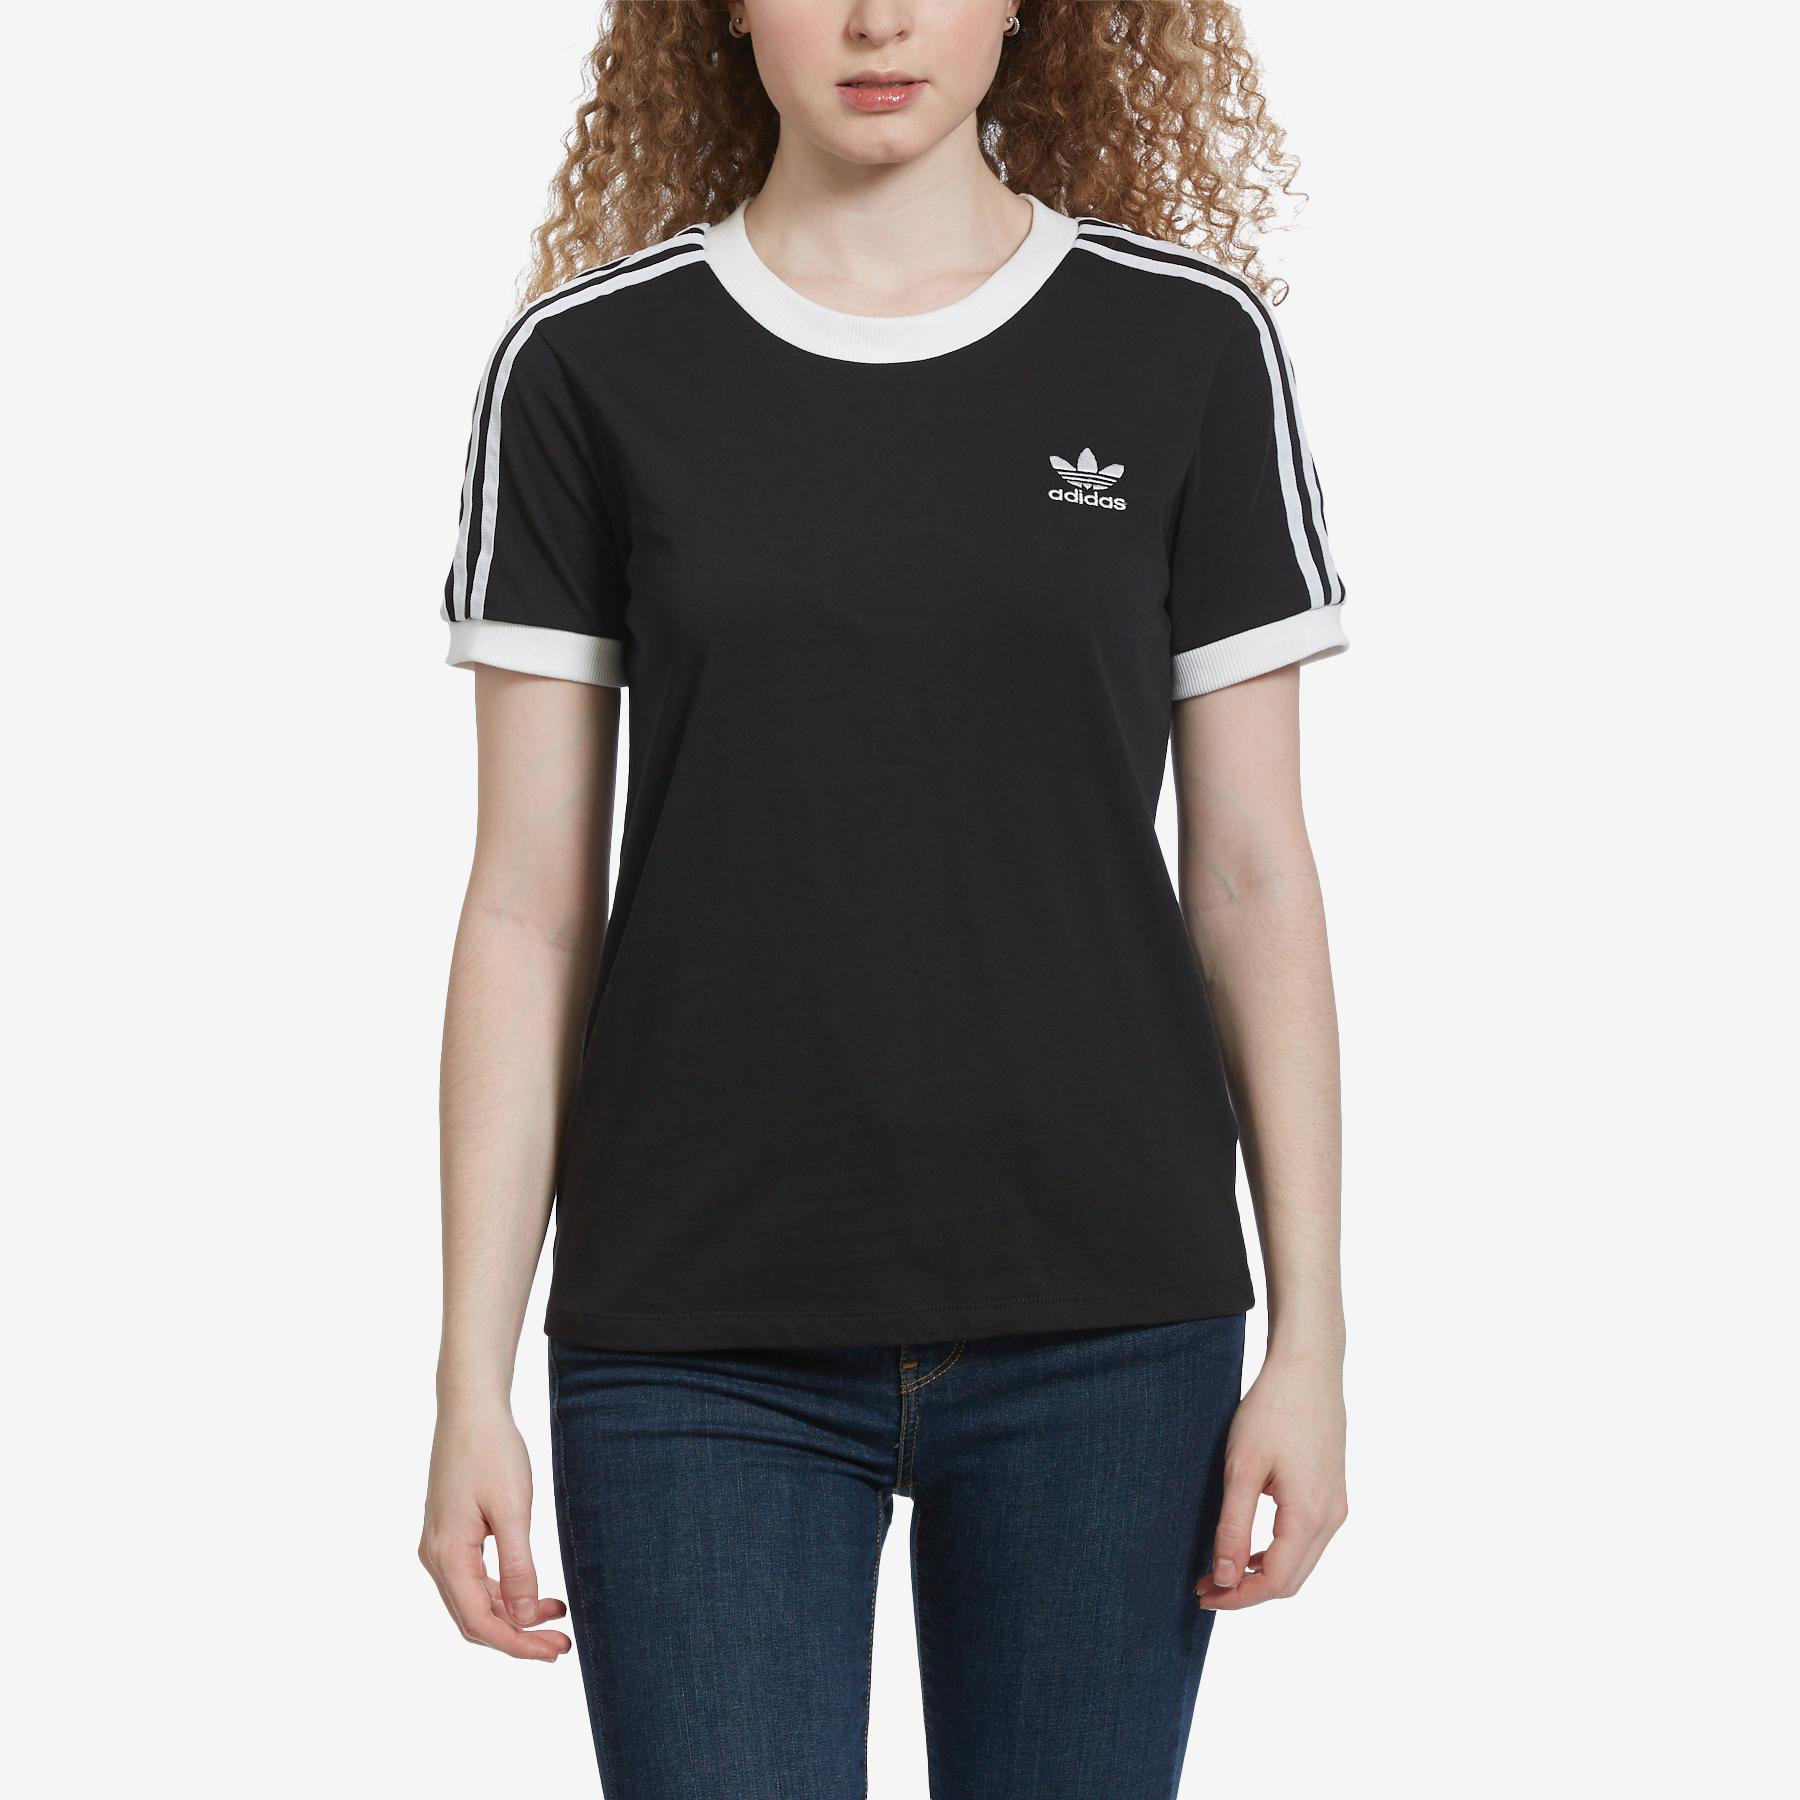 Women's 3 Stripes Tee